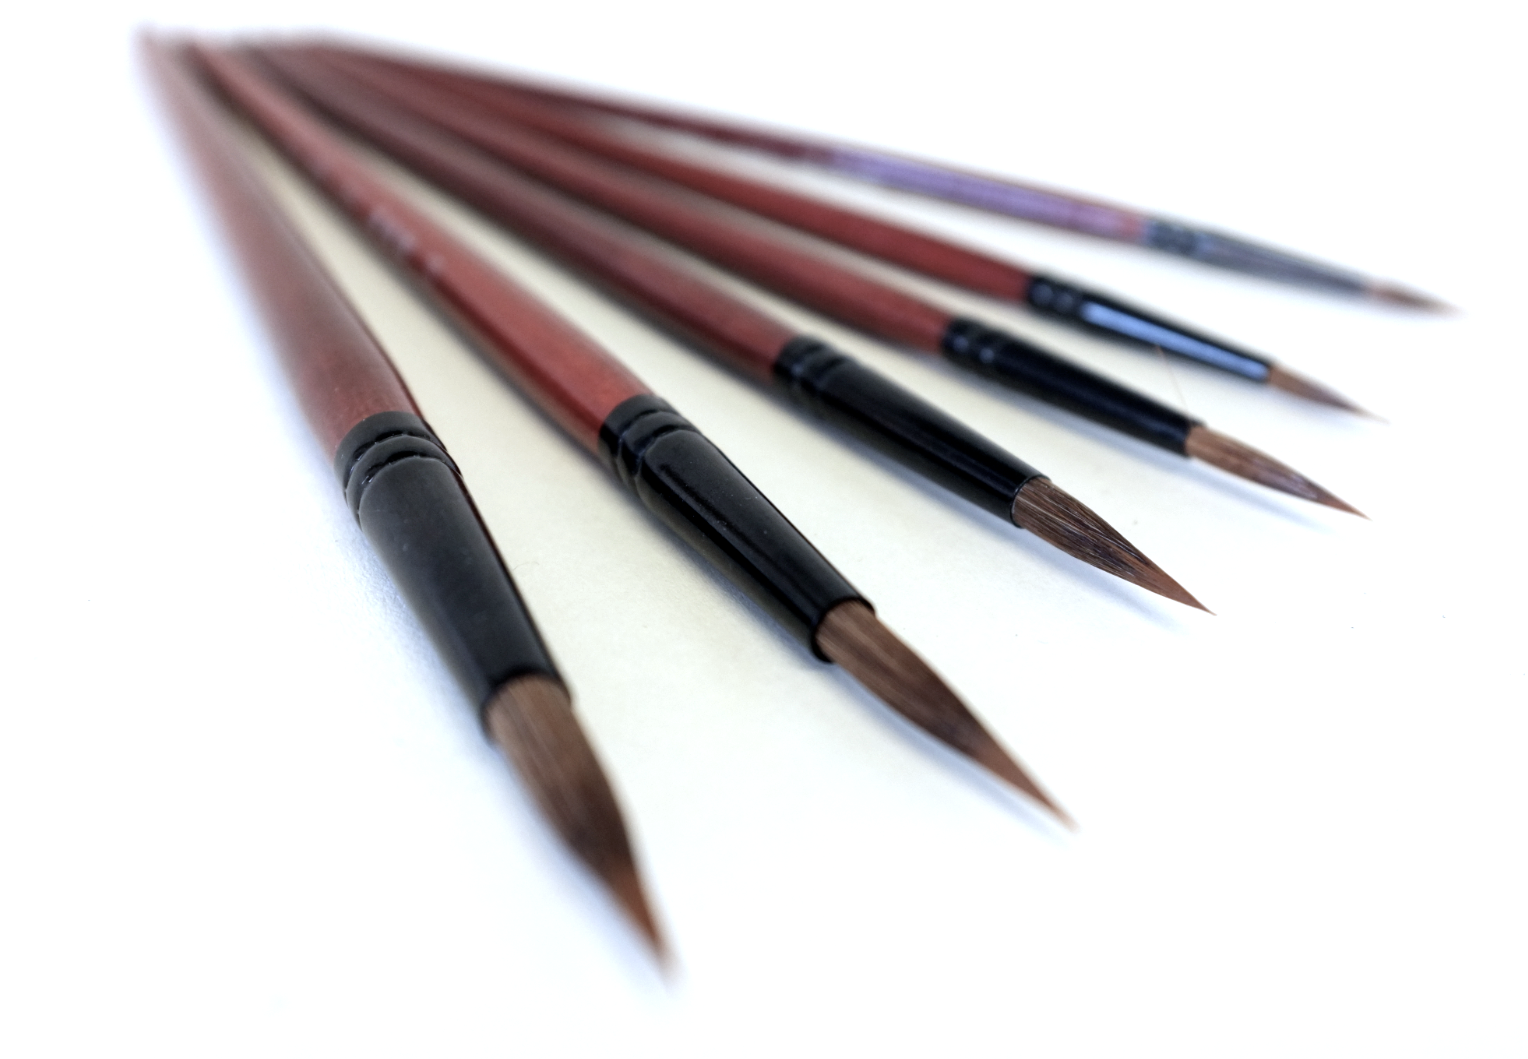 Sable Round Brushes for Watercolour, Acrylic and Chinese painting ...